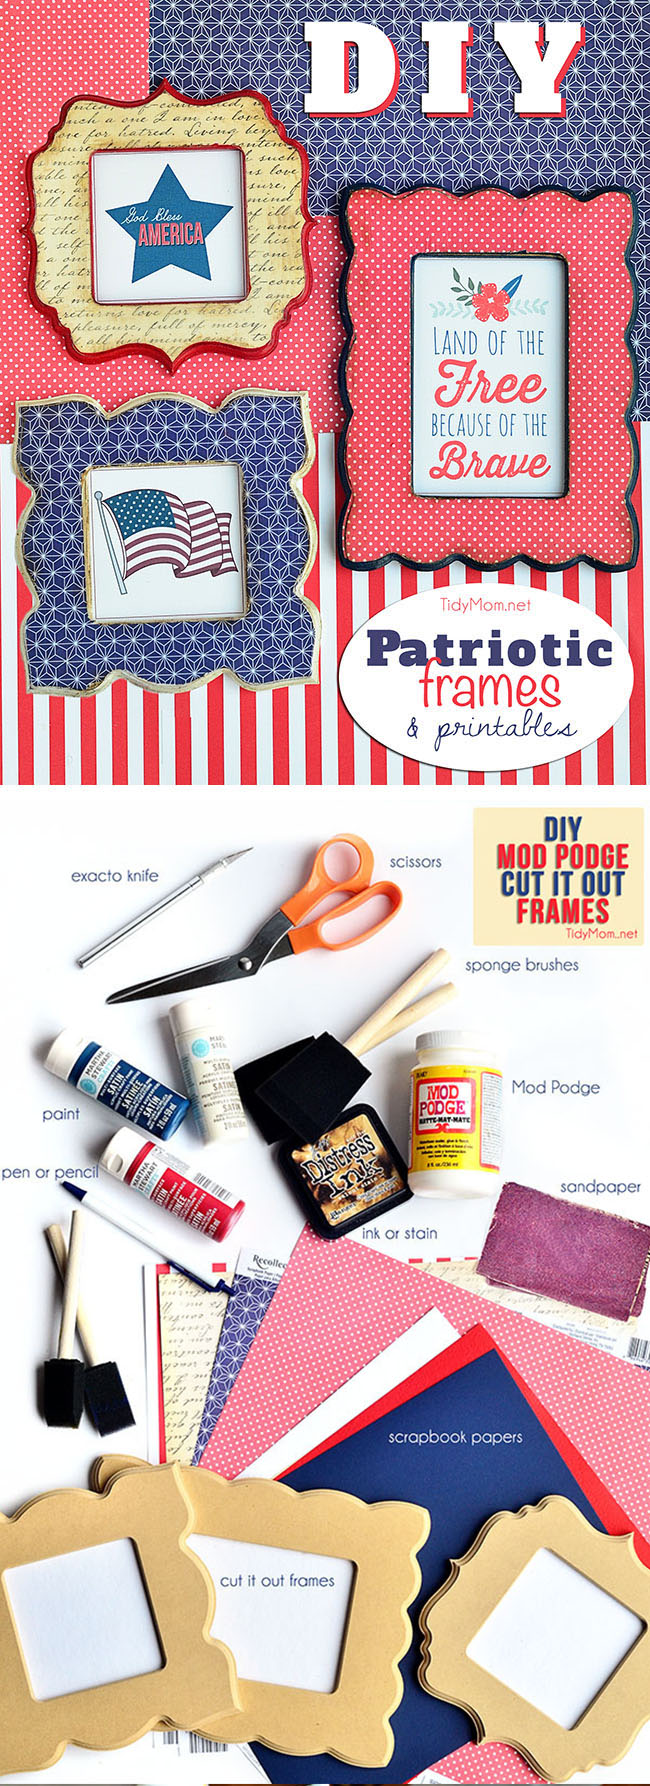 Make these fun patriotic frames with scrapbook paper, Mod Podge and unfinished wood frames. DIY Patriotic Frames Tutorial + FREE PATRIOTIC PRINTABLES to download at TidyMom.net